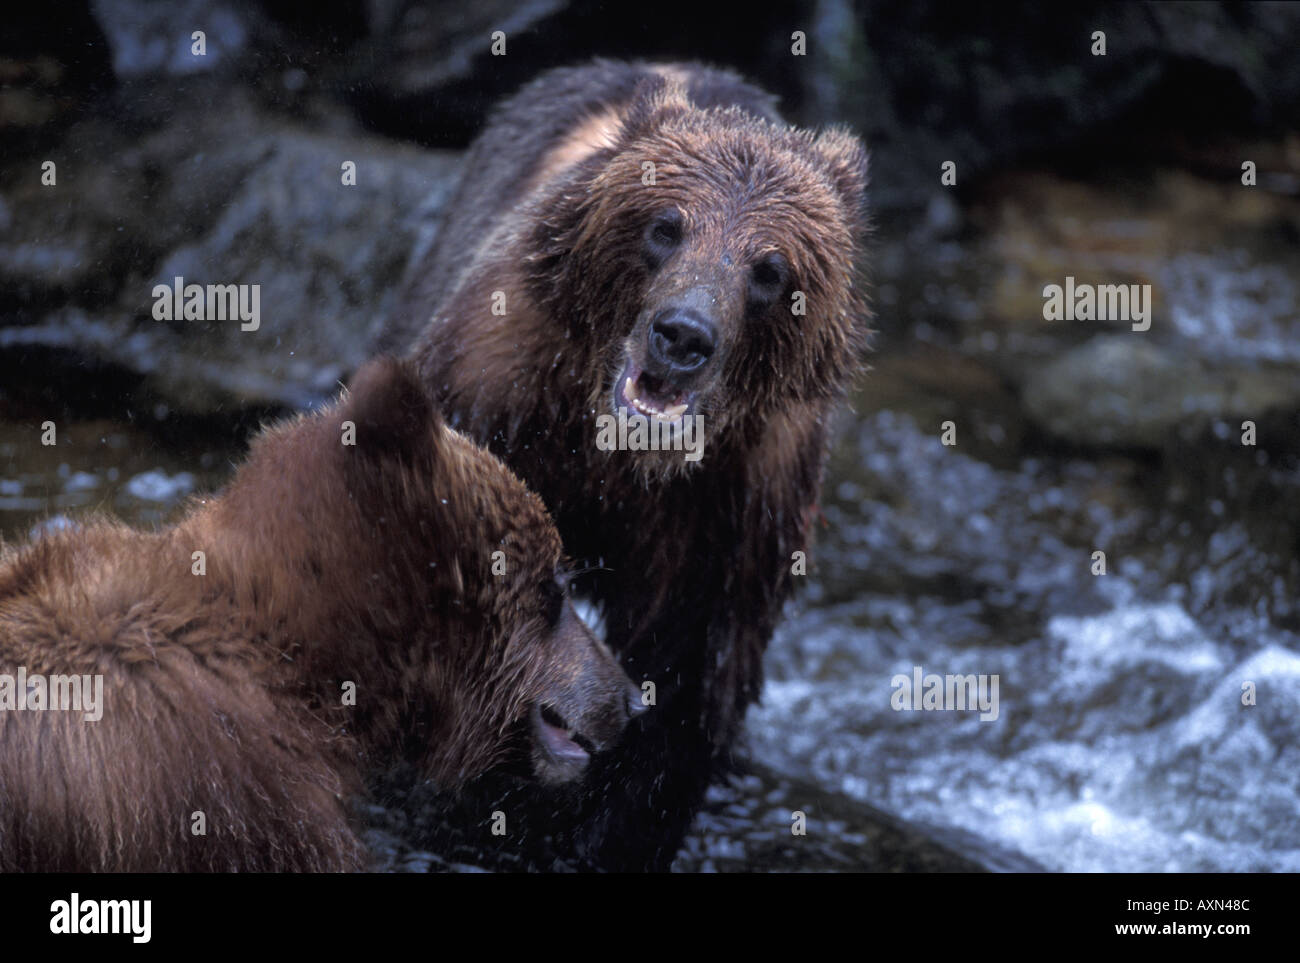 Grizzly bear brothers play fighting at Anon Creek Bear Reserve Southeast Alaska - Stock Image